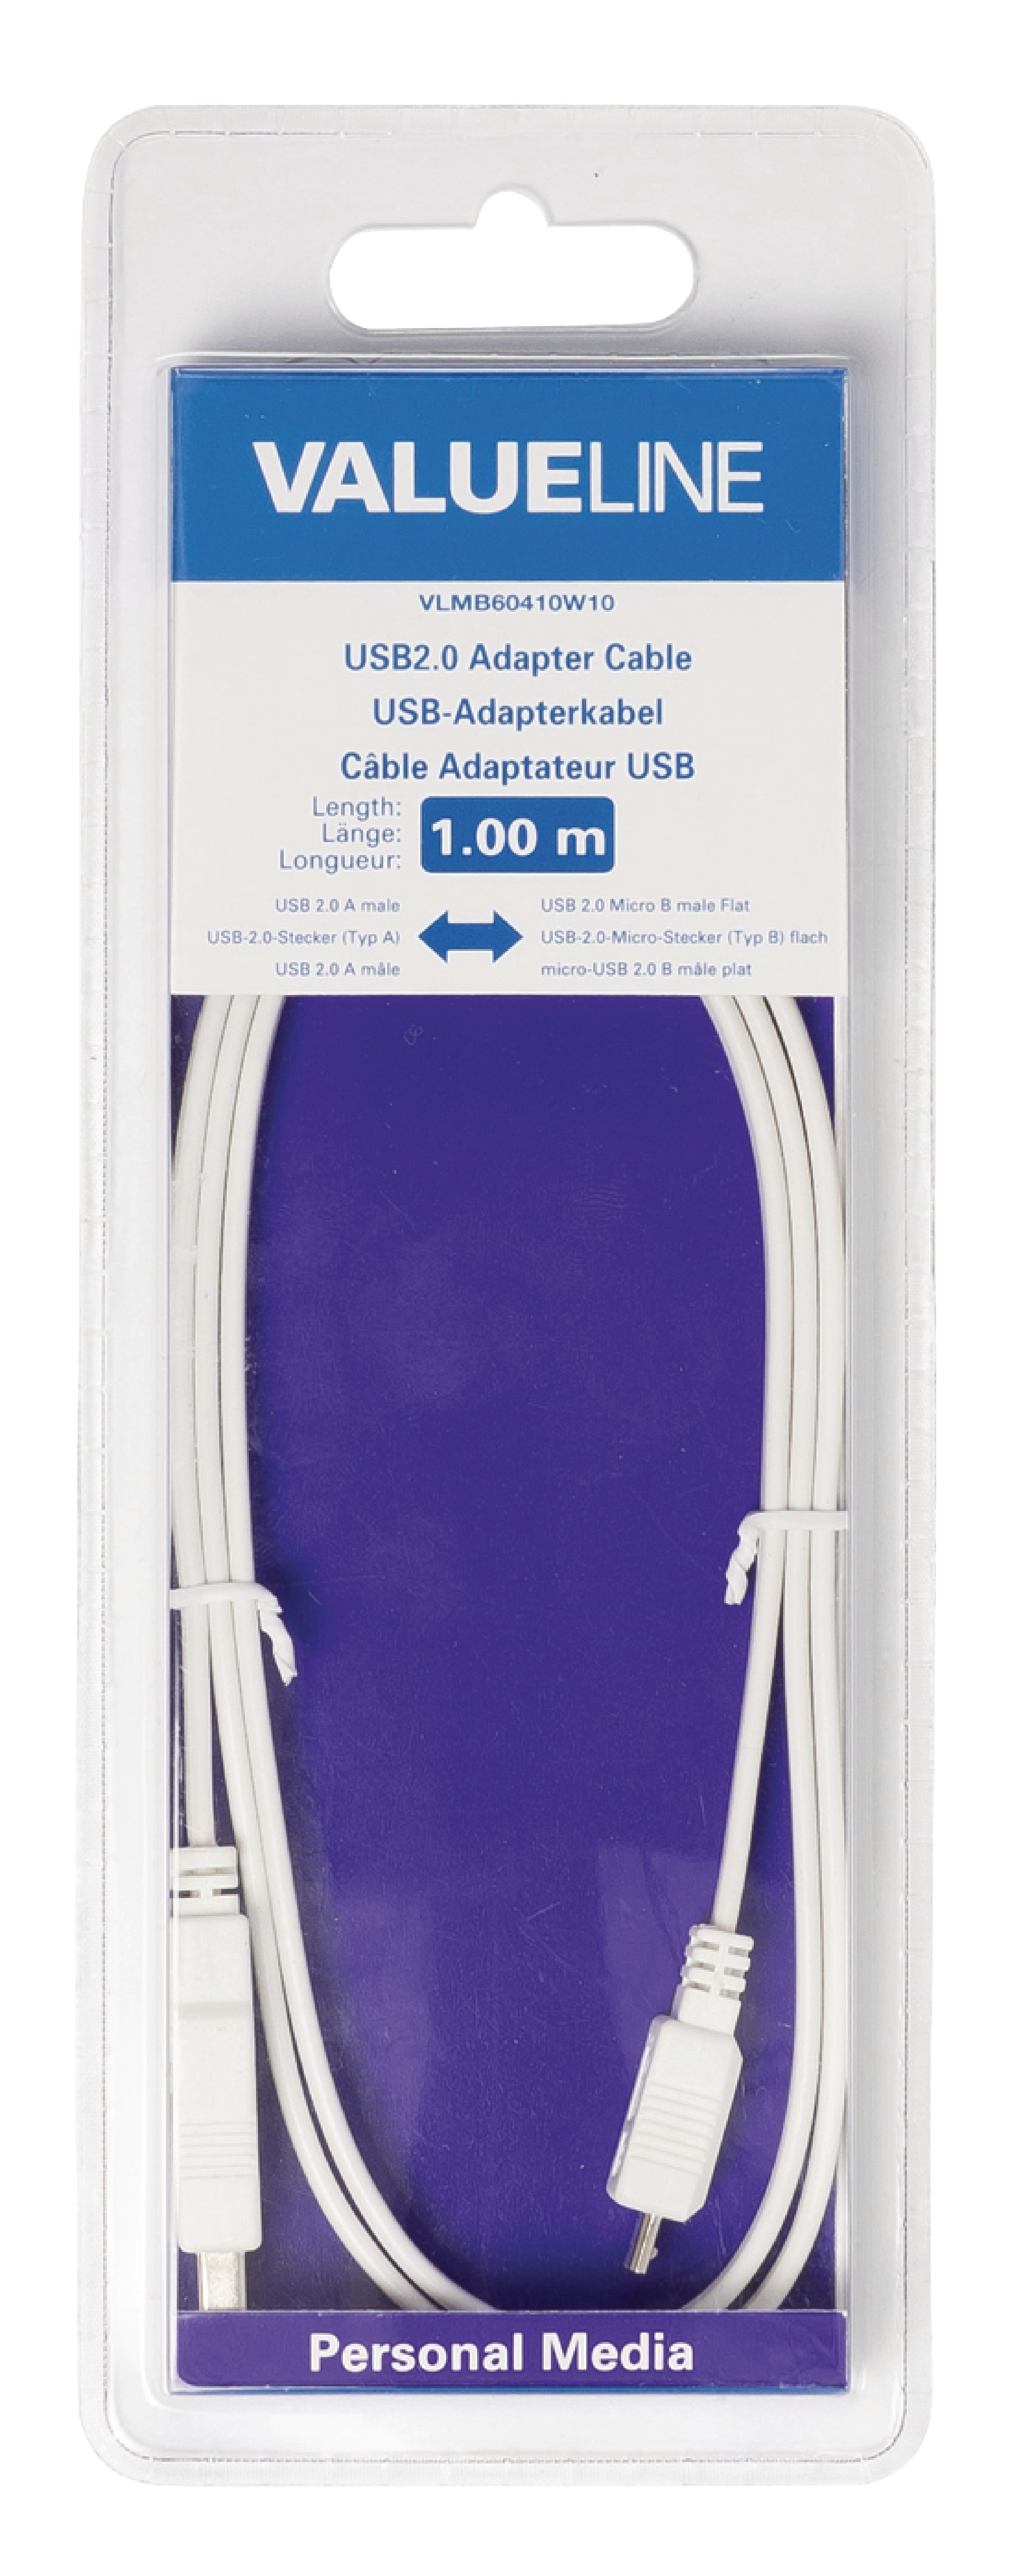 Vlmb60410w10 Valueline Usb 20 Cable A Male Micro B Flat 2 0 Wiring 100 M